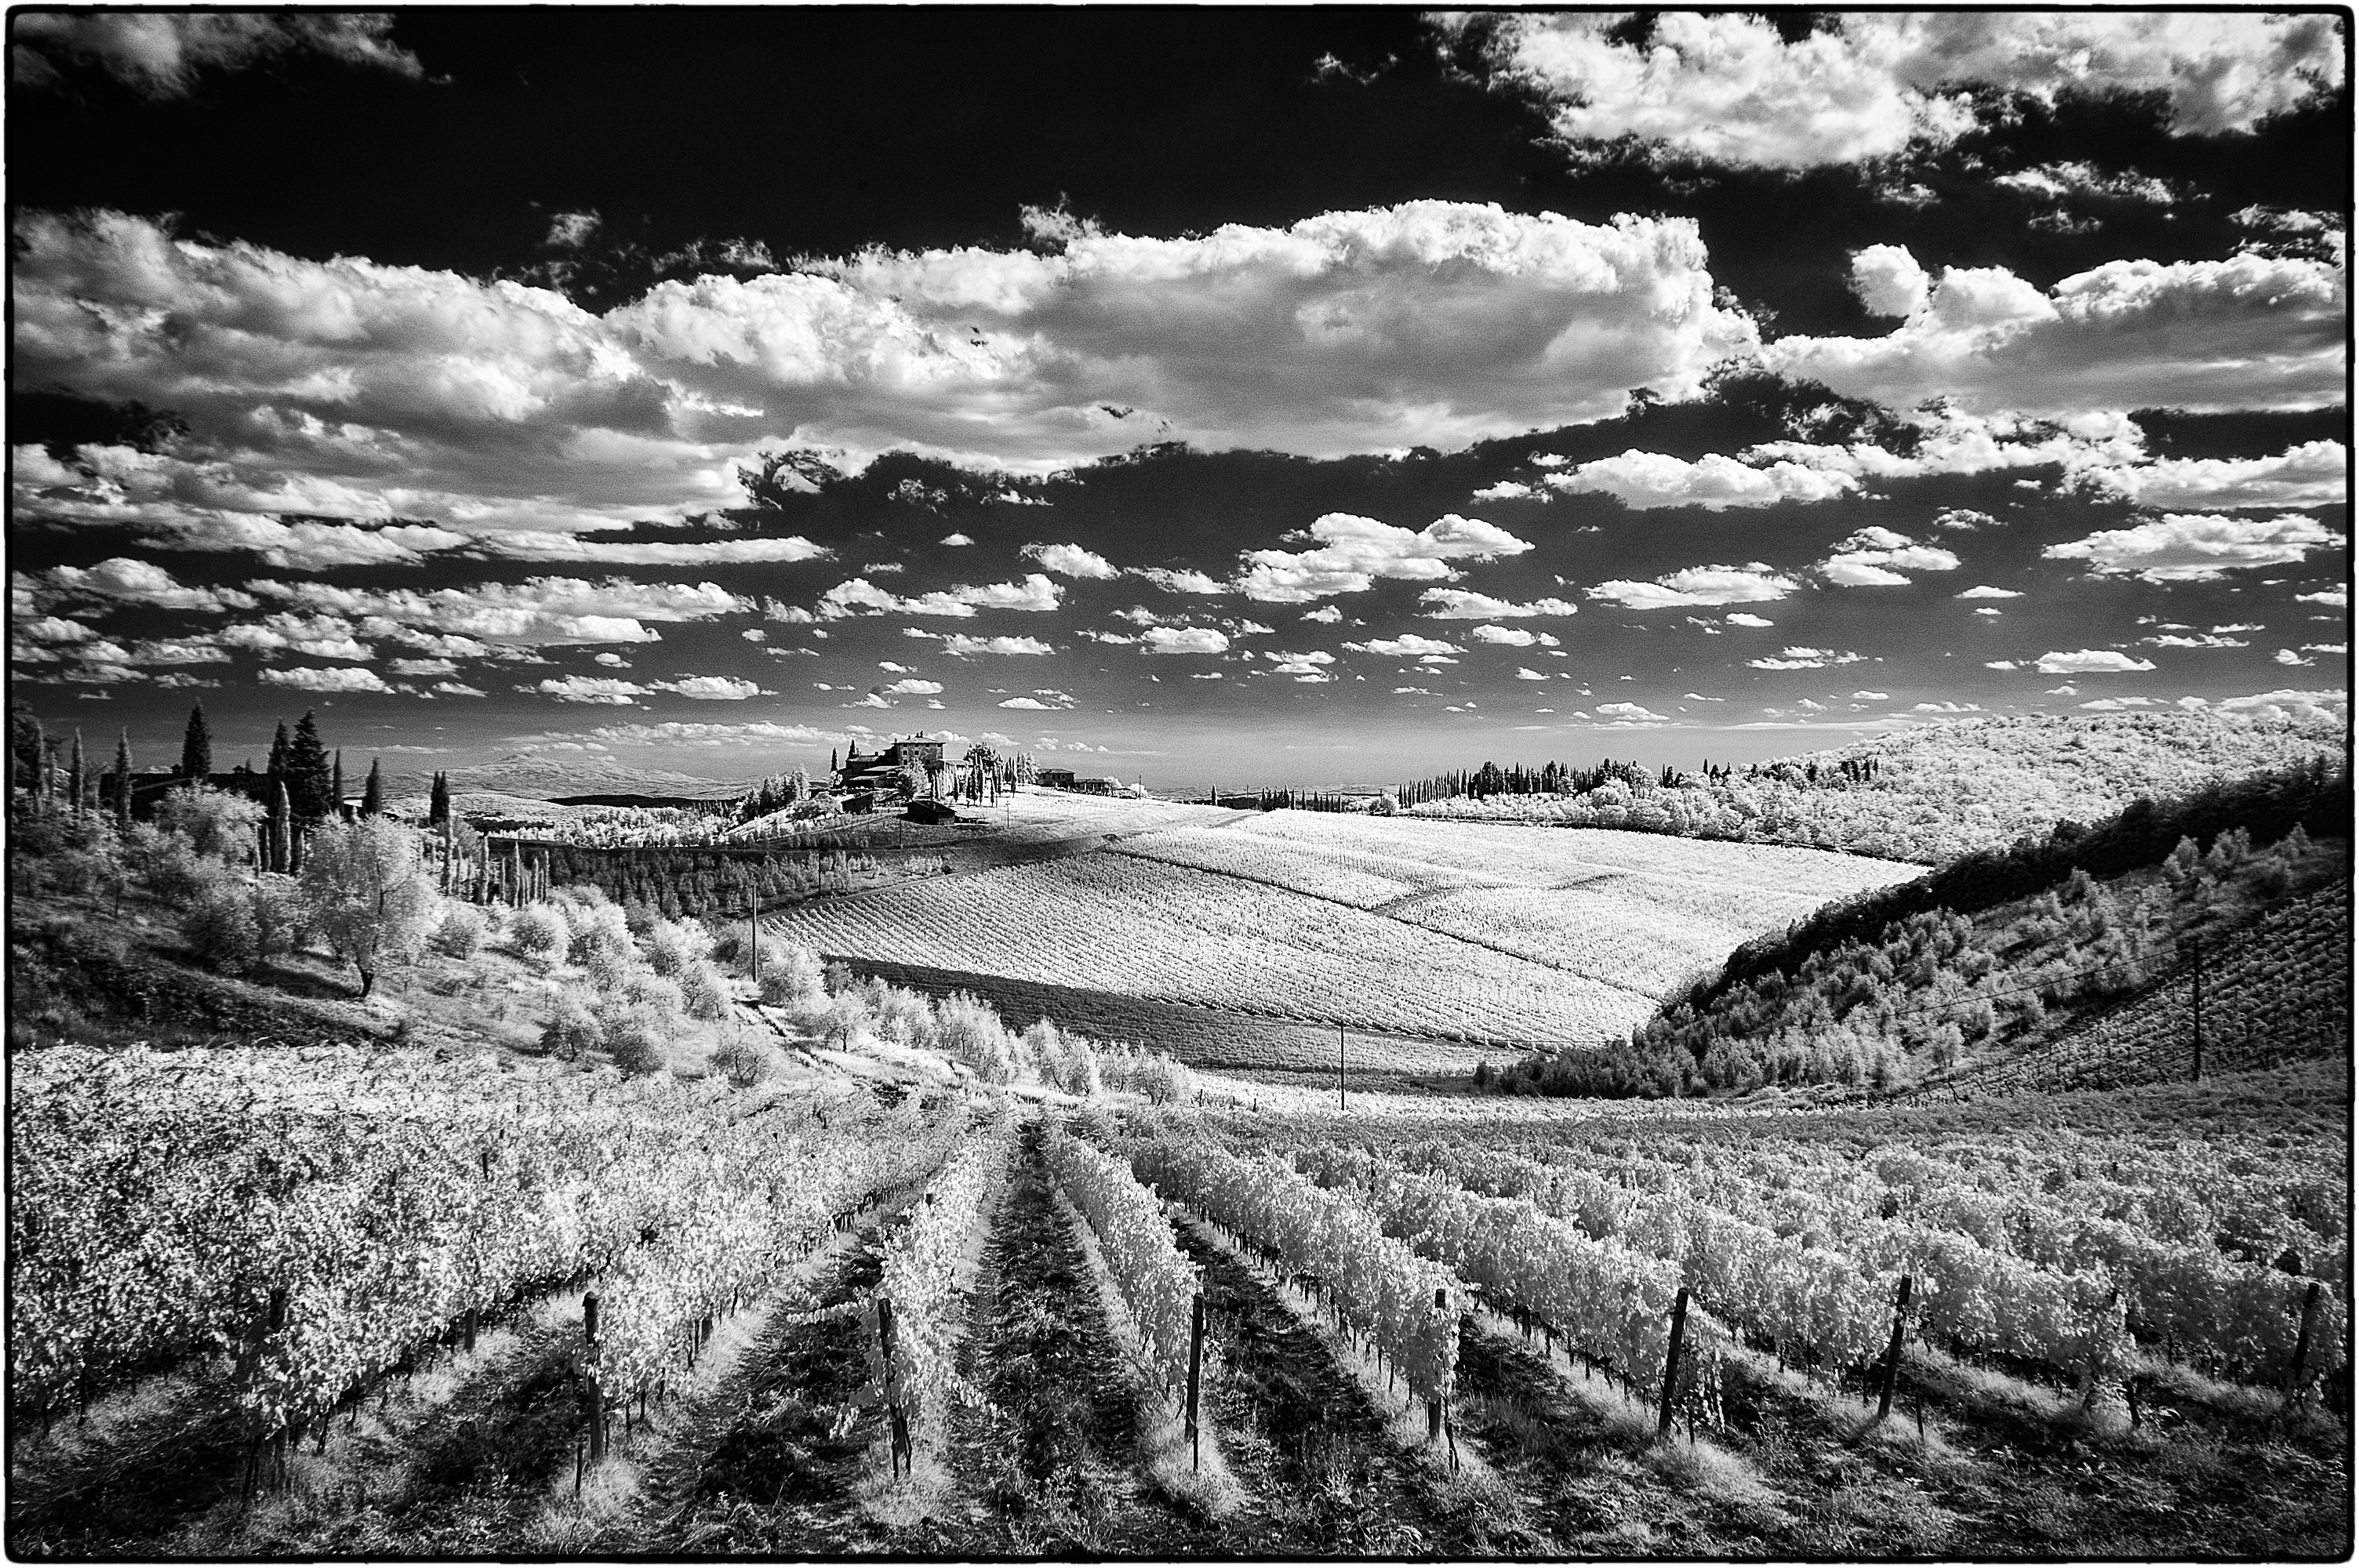 X photography beyond visible light shooting in infrared